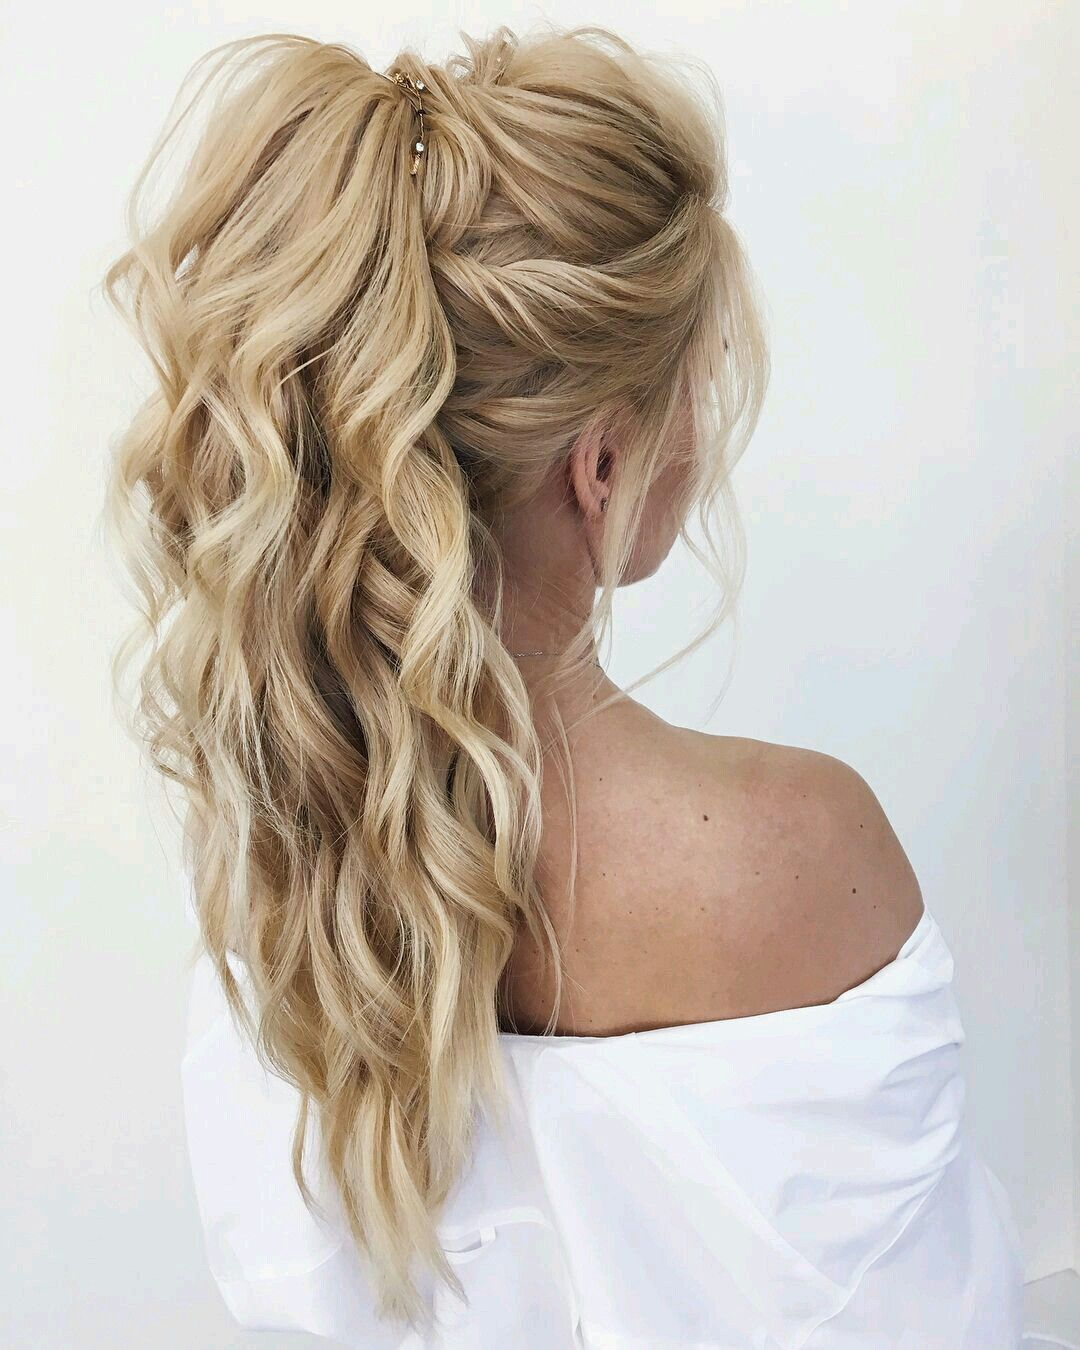 Pin on short curly hairstyles -   12 homecoming hairstyles Updo ideas